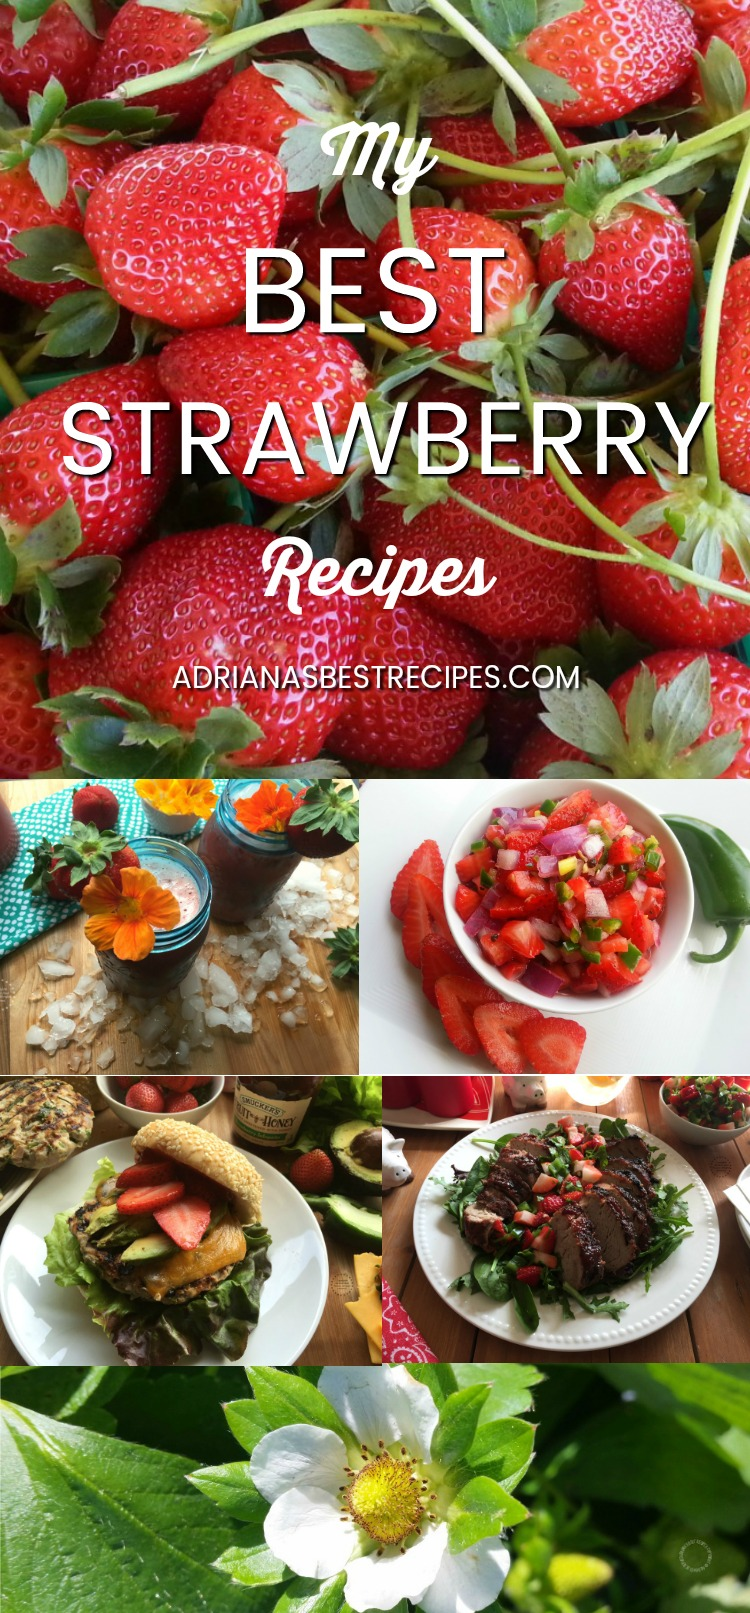 Fall in love with Florida strawberries enjoying my best strawberry recipes up to date. Including strawberry chia agua fresca, strawberry salsa and chips, strawberry jalapeño turkey burger, strawberry jalapeño pork loin and a 3 ingredient no churn strawberry milk ice cream.